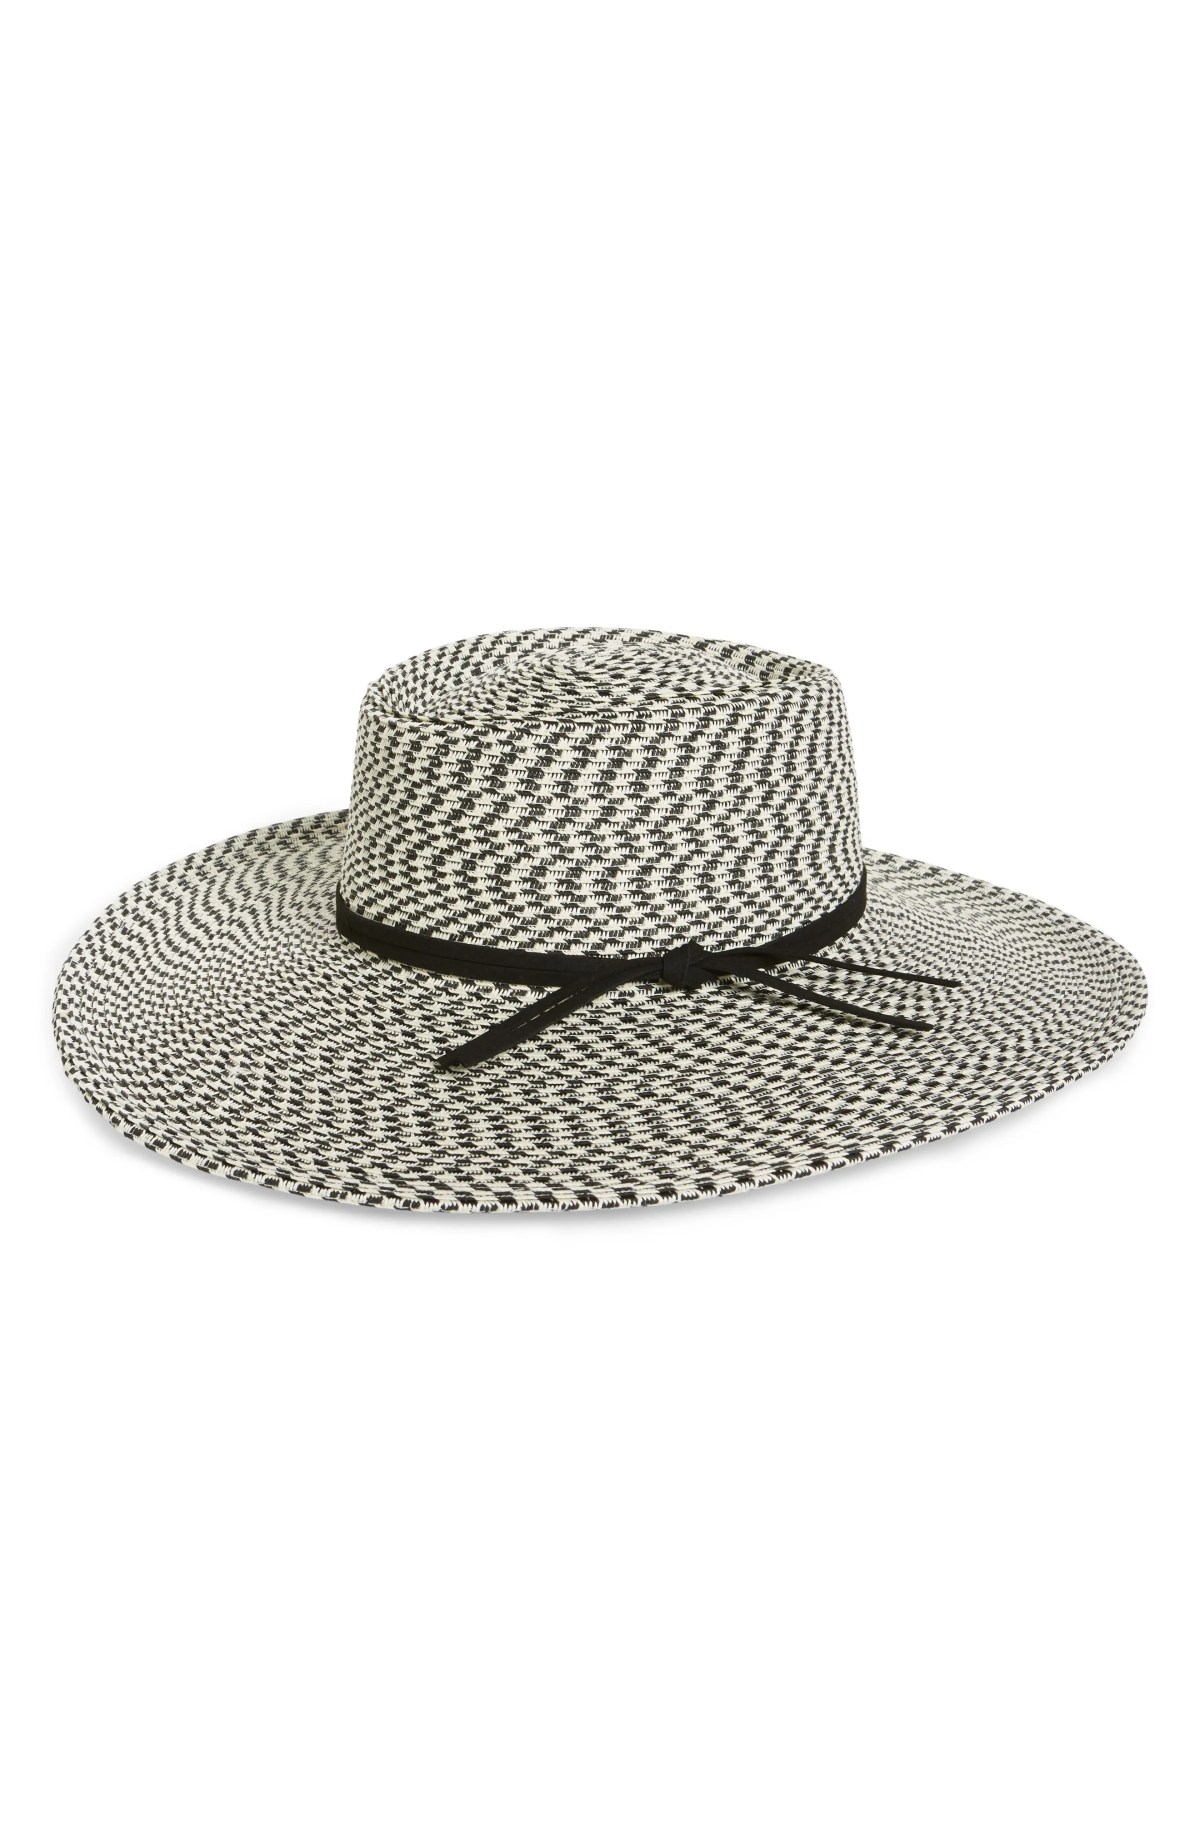 Two-Tone Straw Boater Hat, Main, color, BLACK COMBO